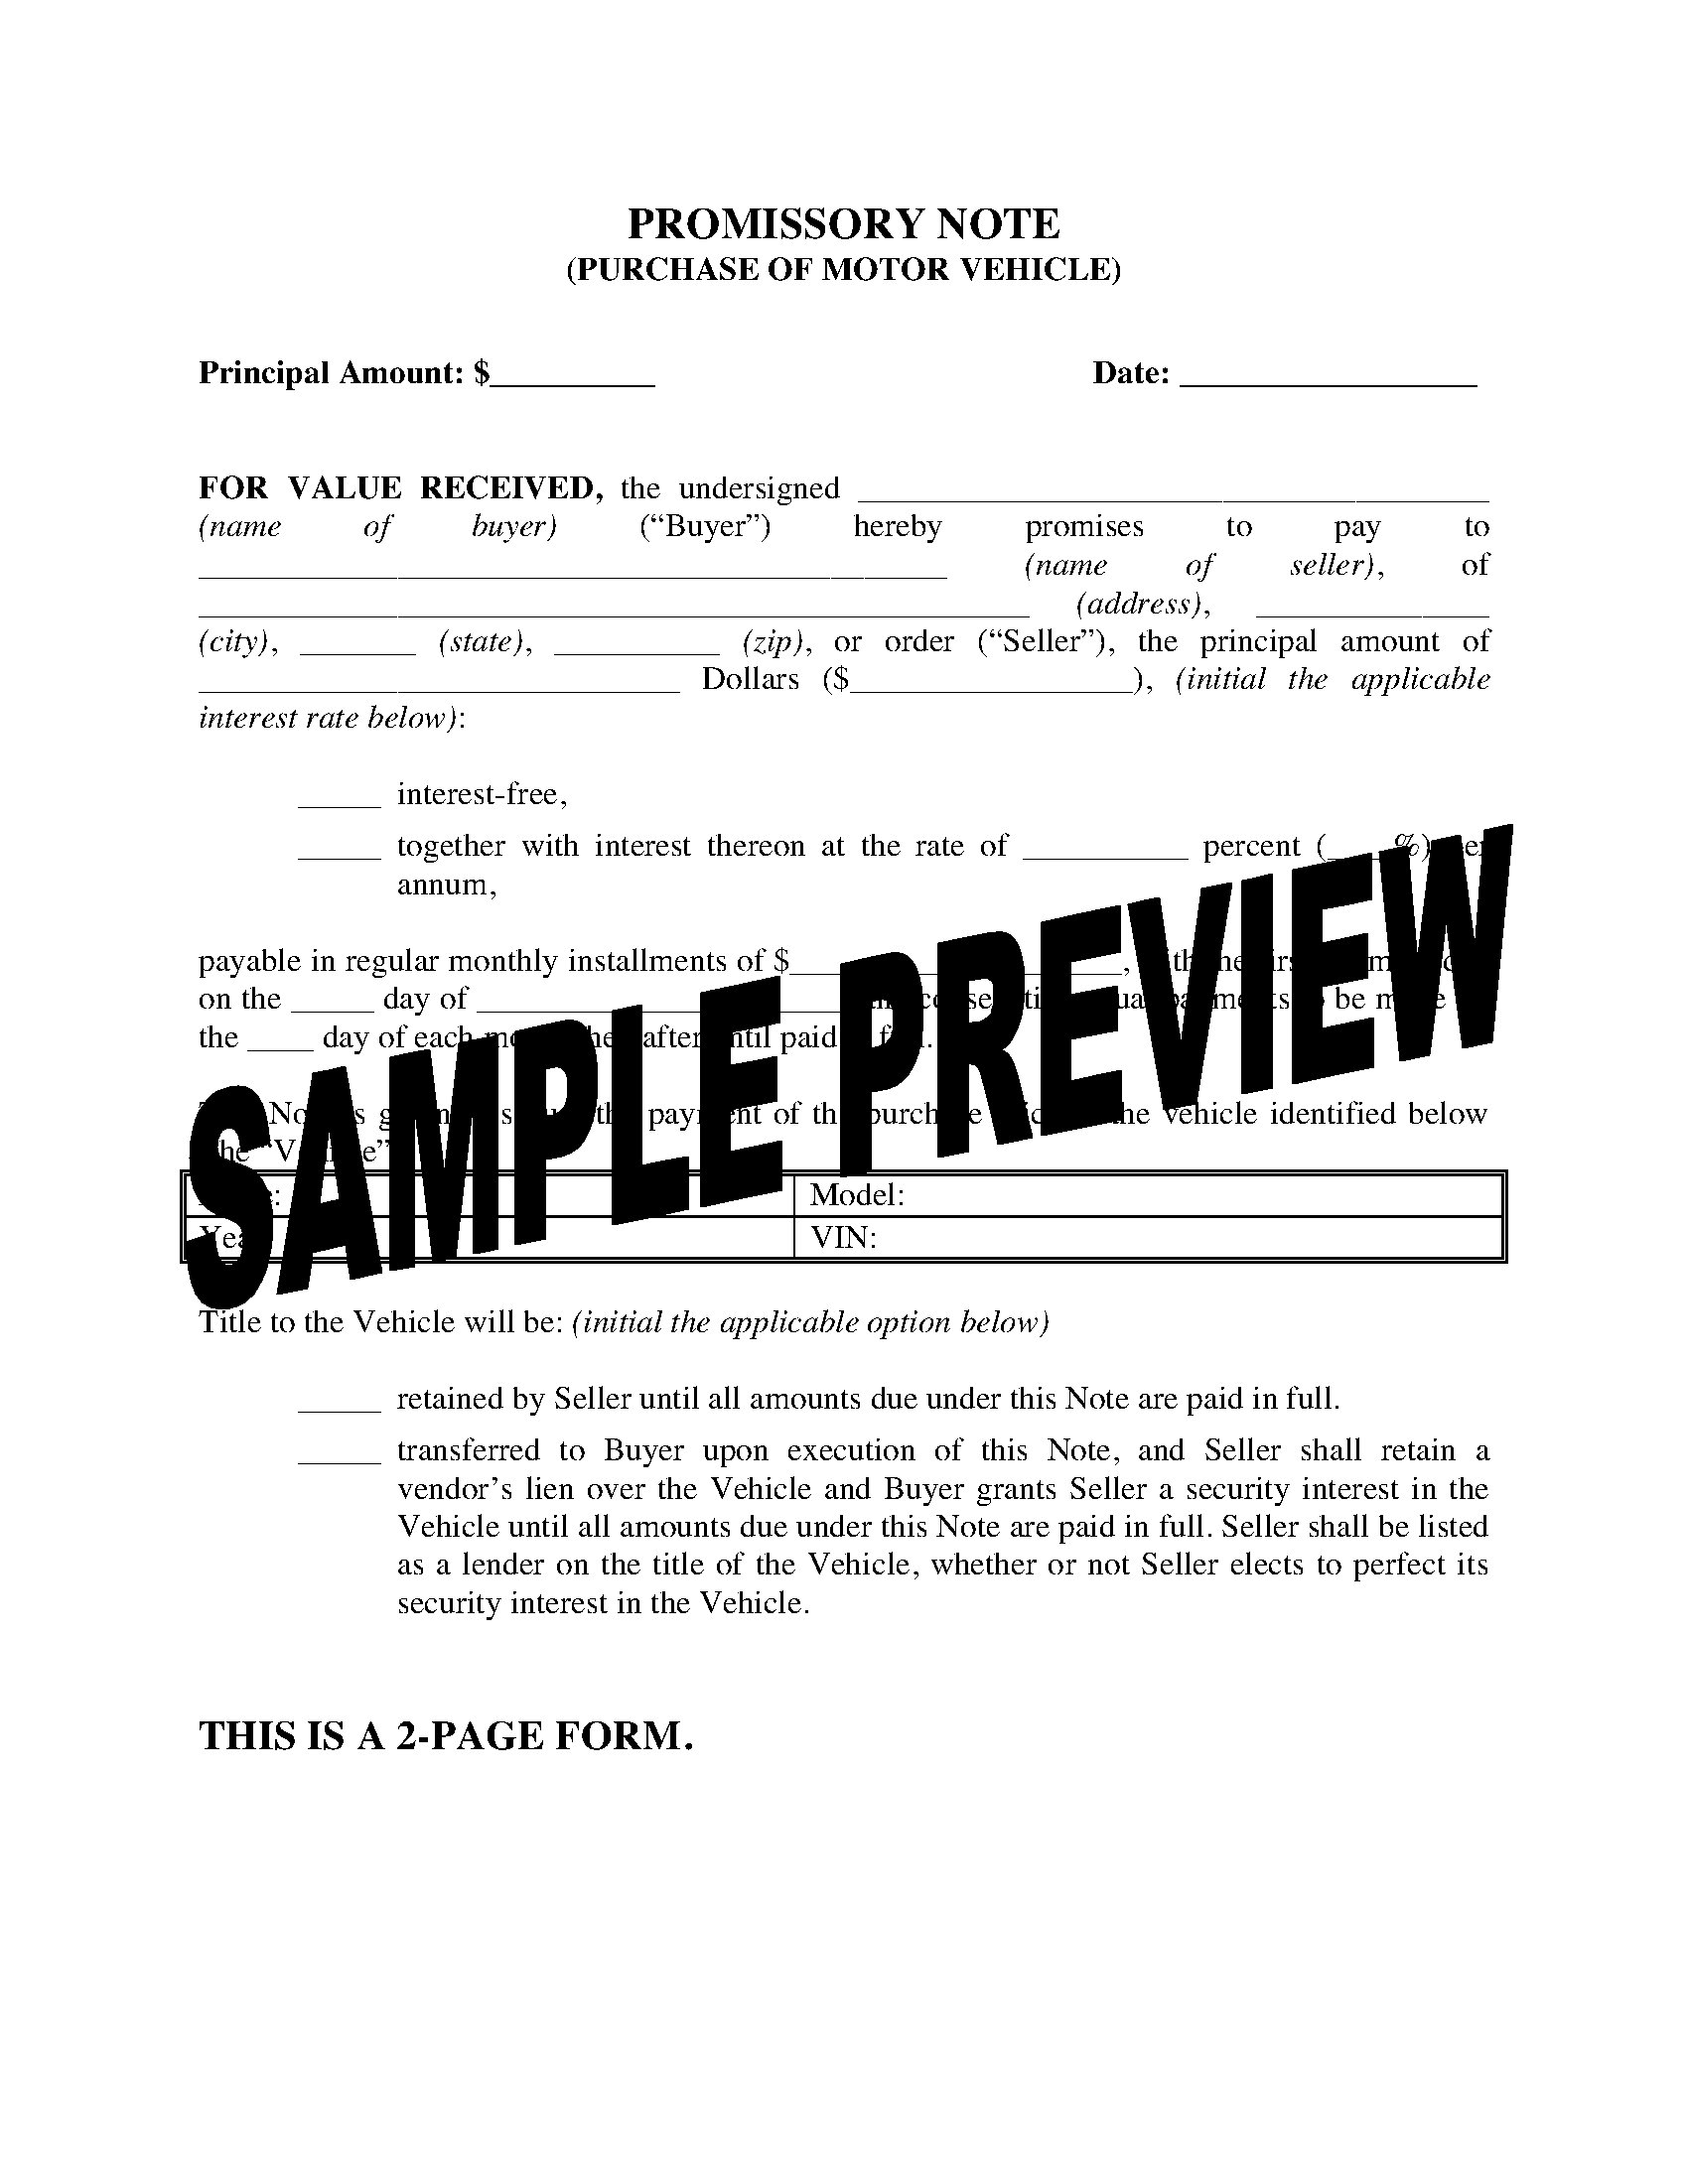 USA Promissory Note for Vehicle Purchase | Legal Forms and Business Templates | MegaDox.com